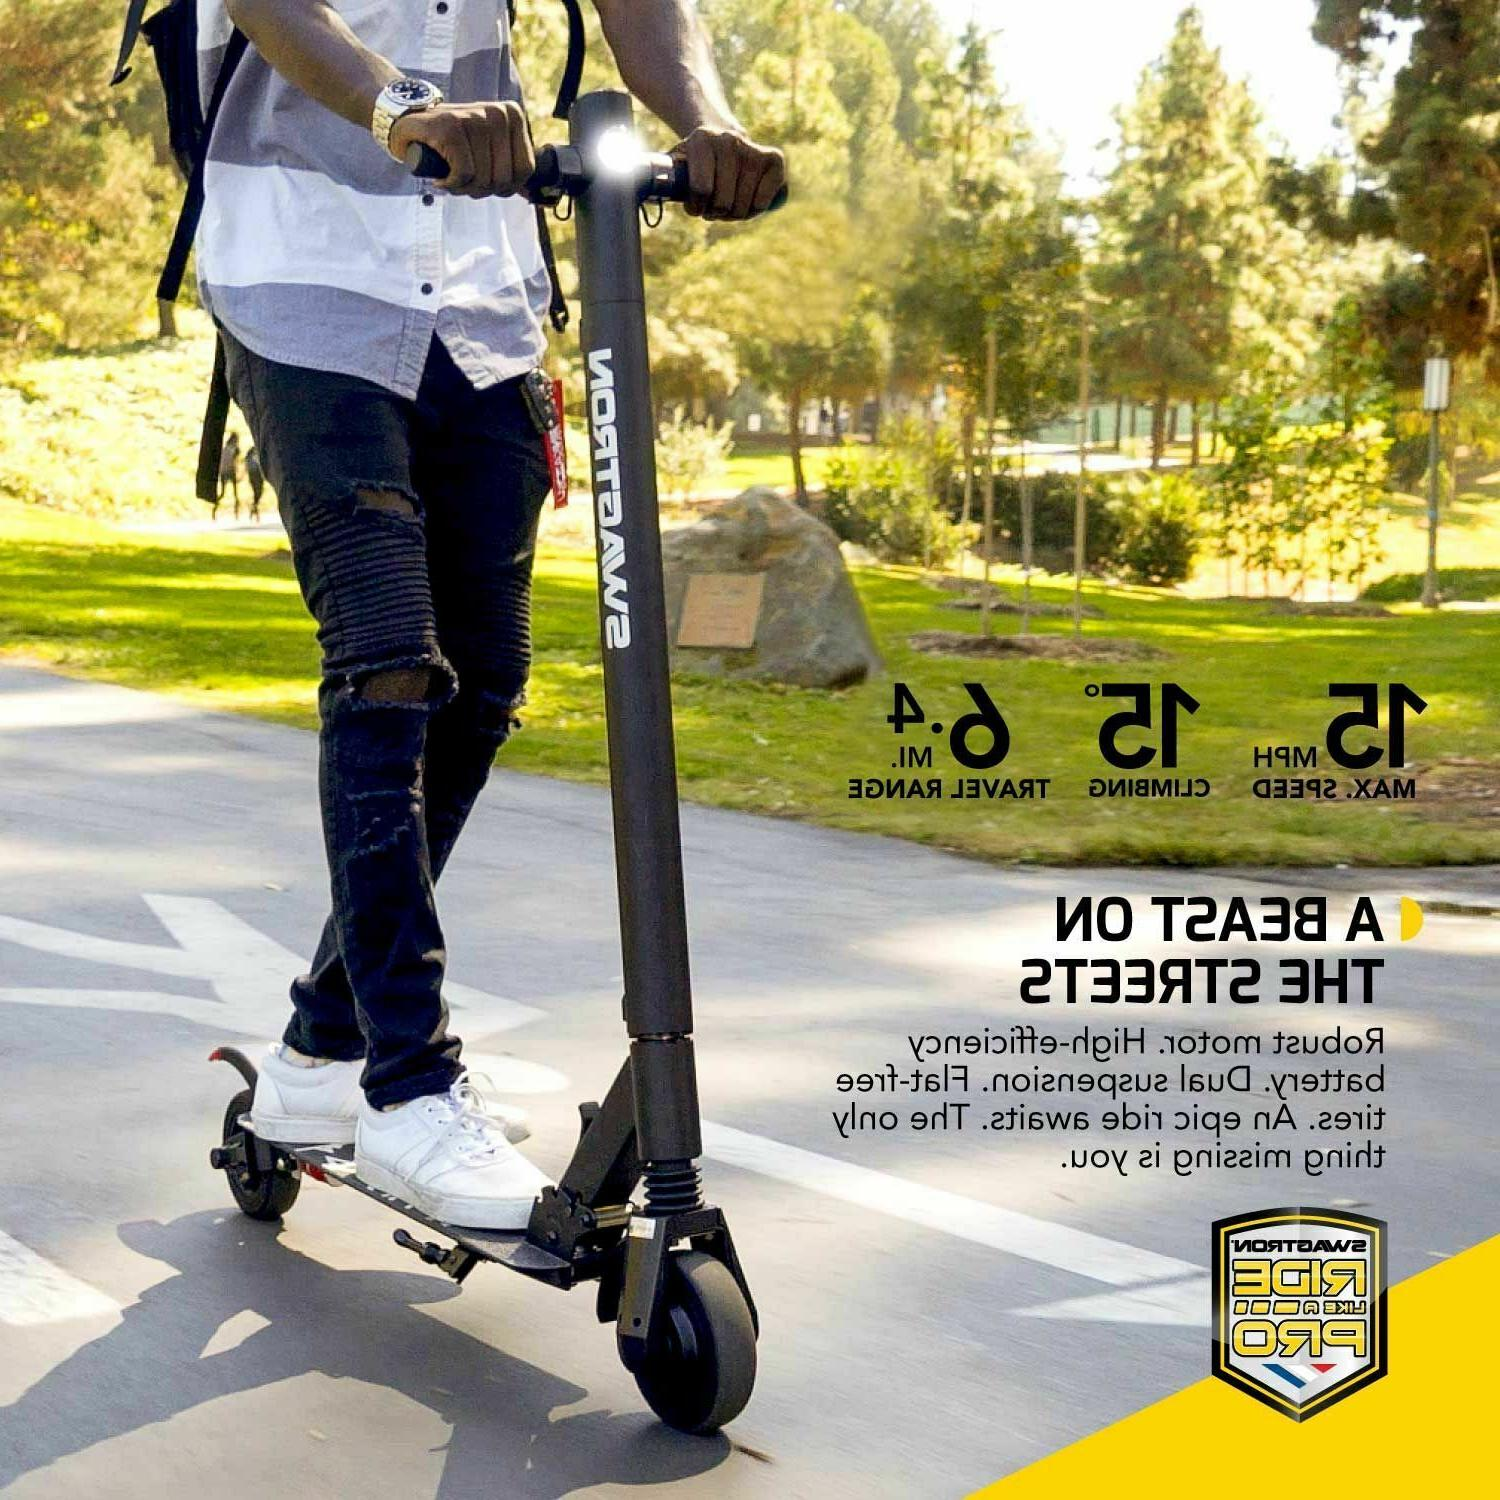 Swagtron Foldable Scooter for E-Scooter 2